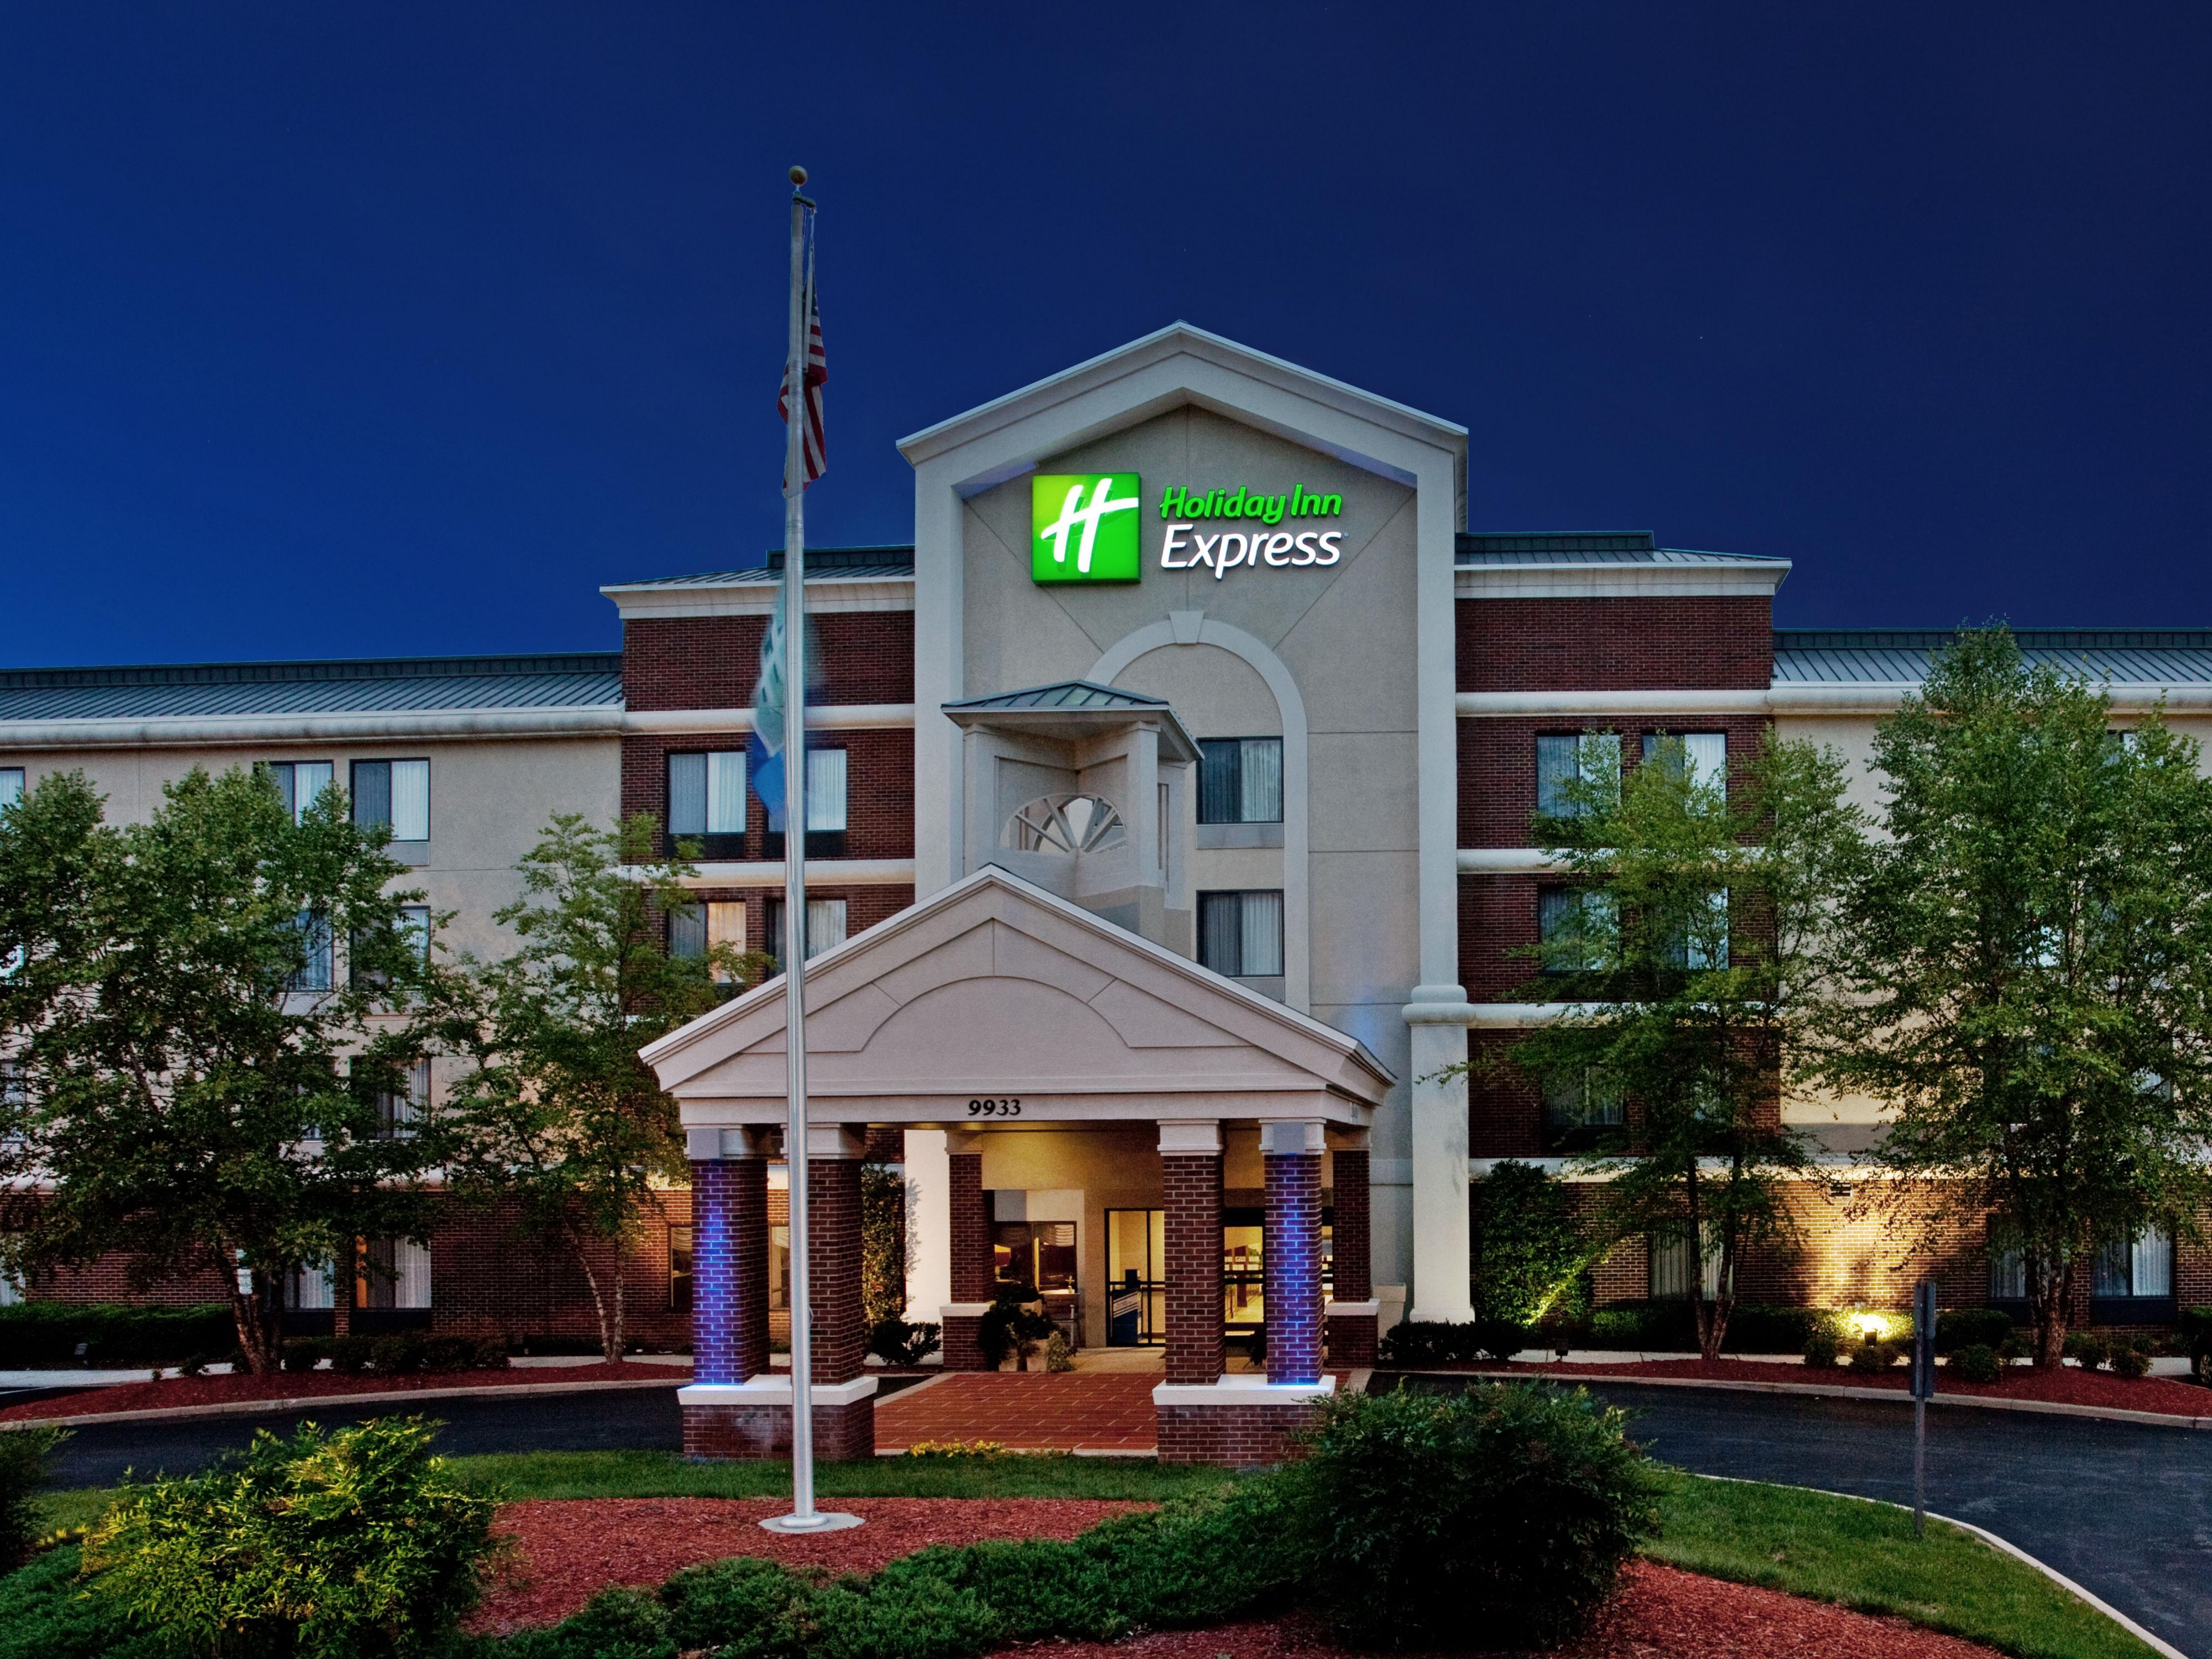 Welcome to the Holiday Inn Express in historic Richmond